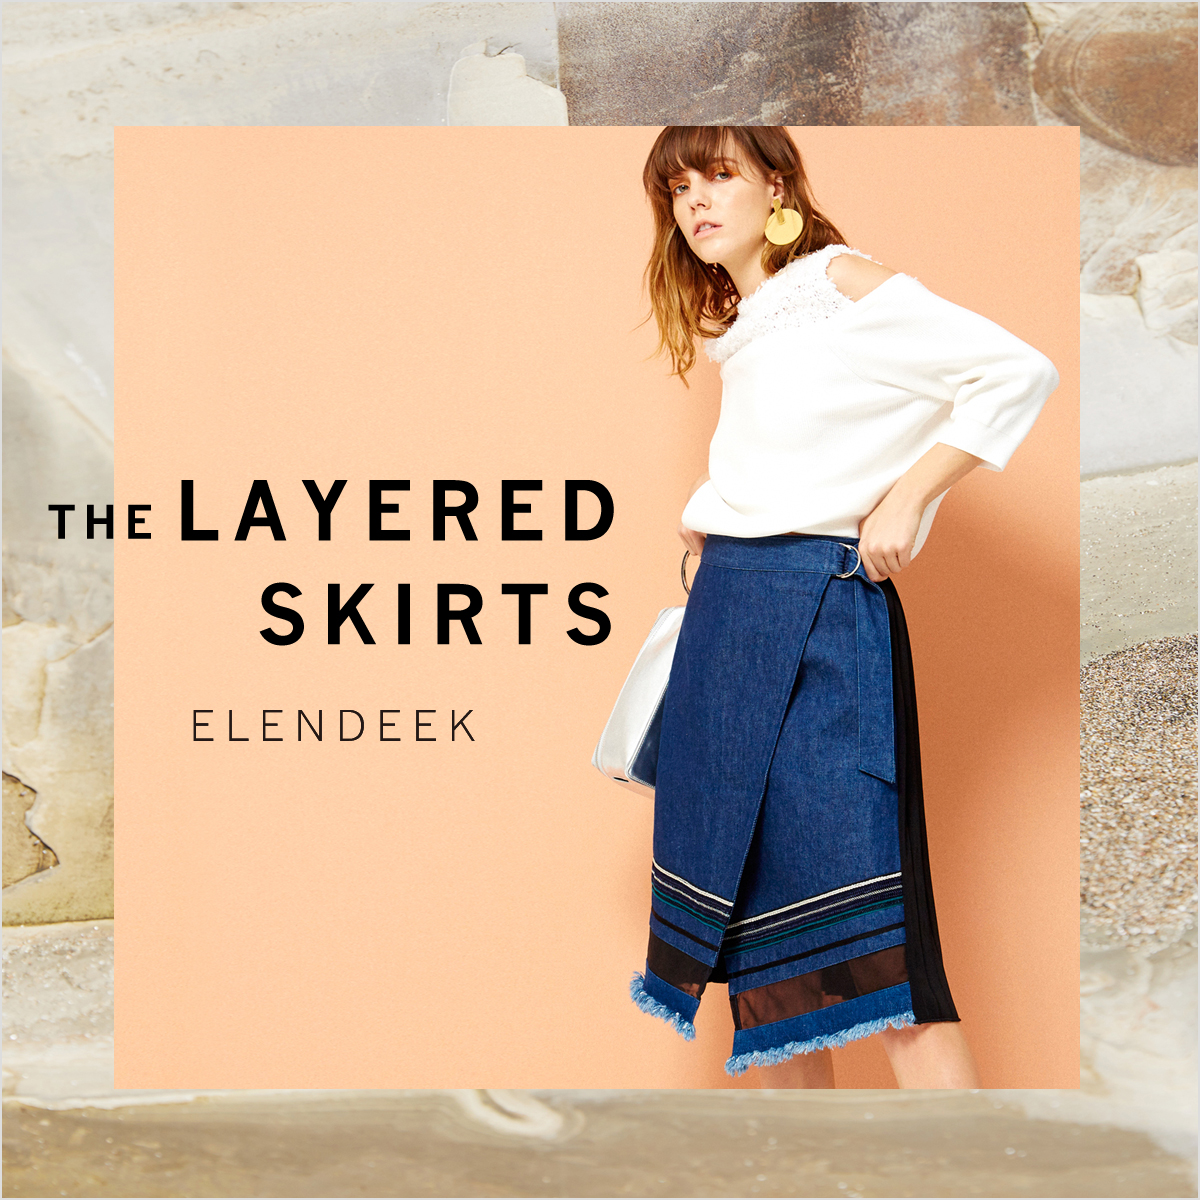 THE LAYERED SKIRTS